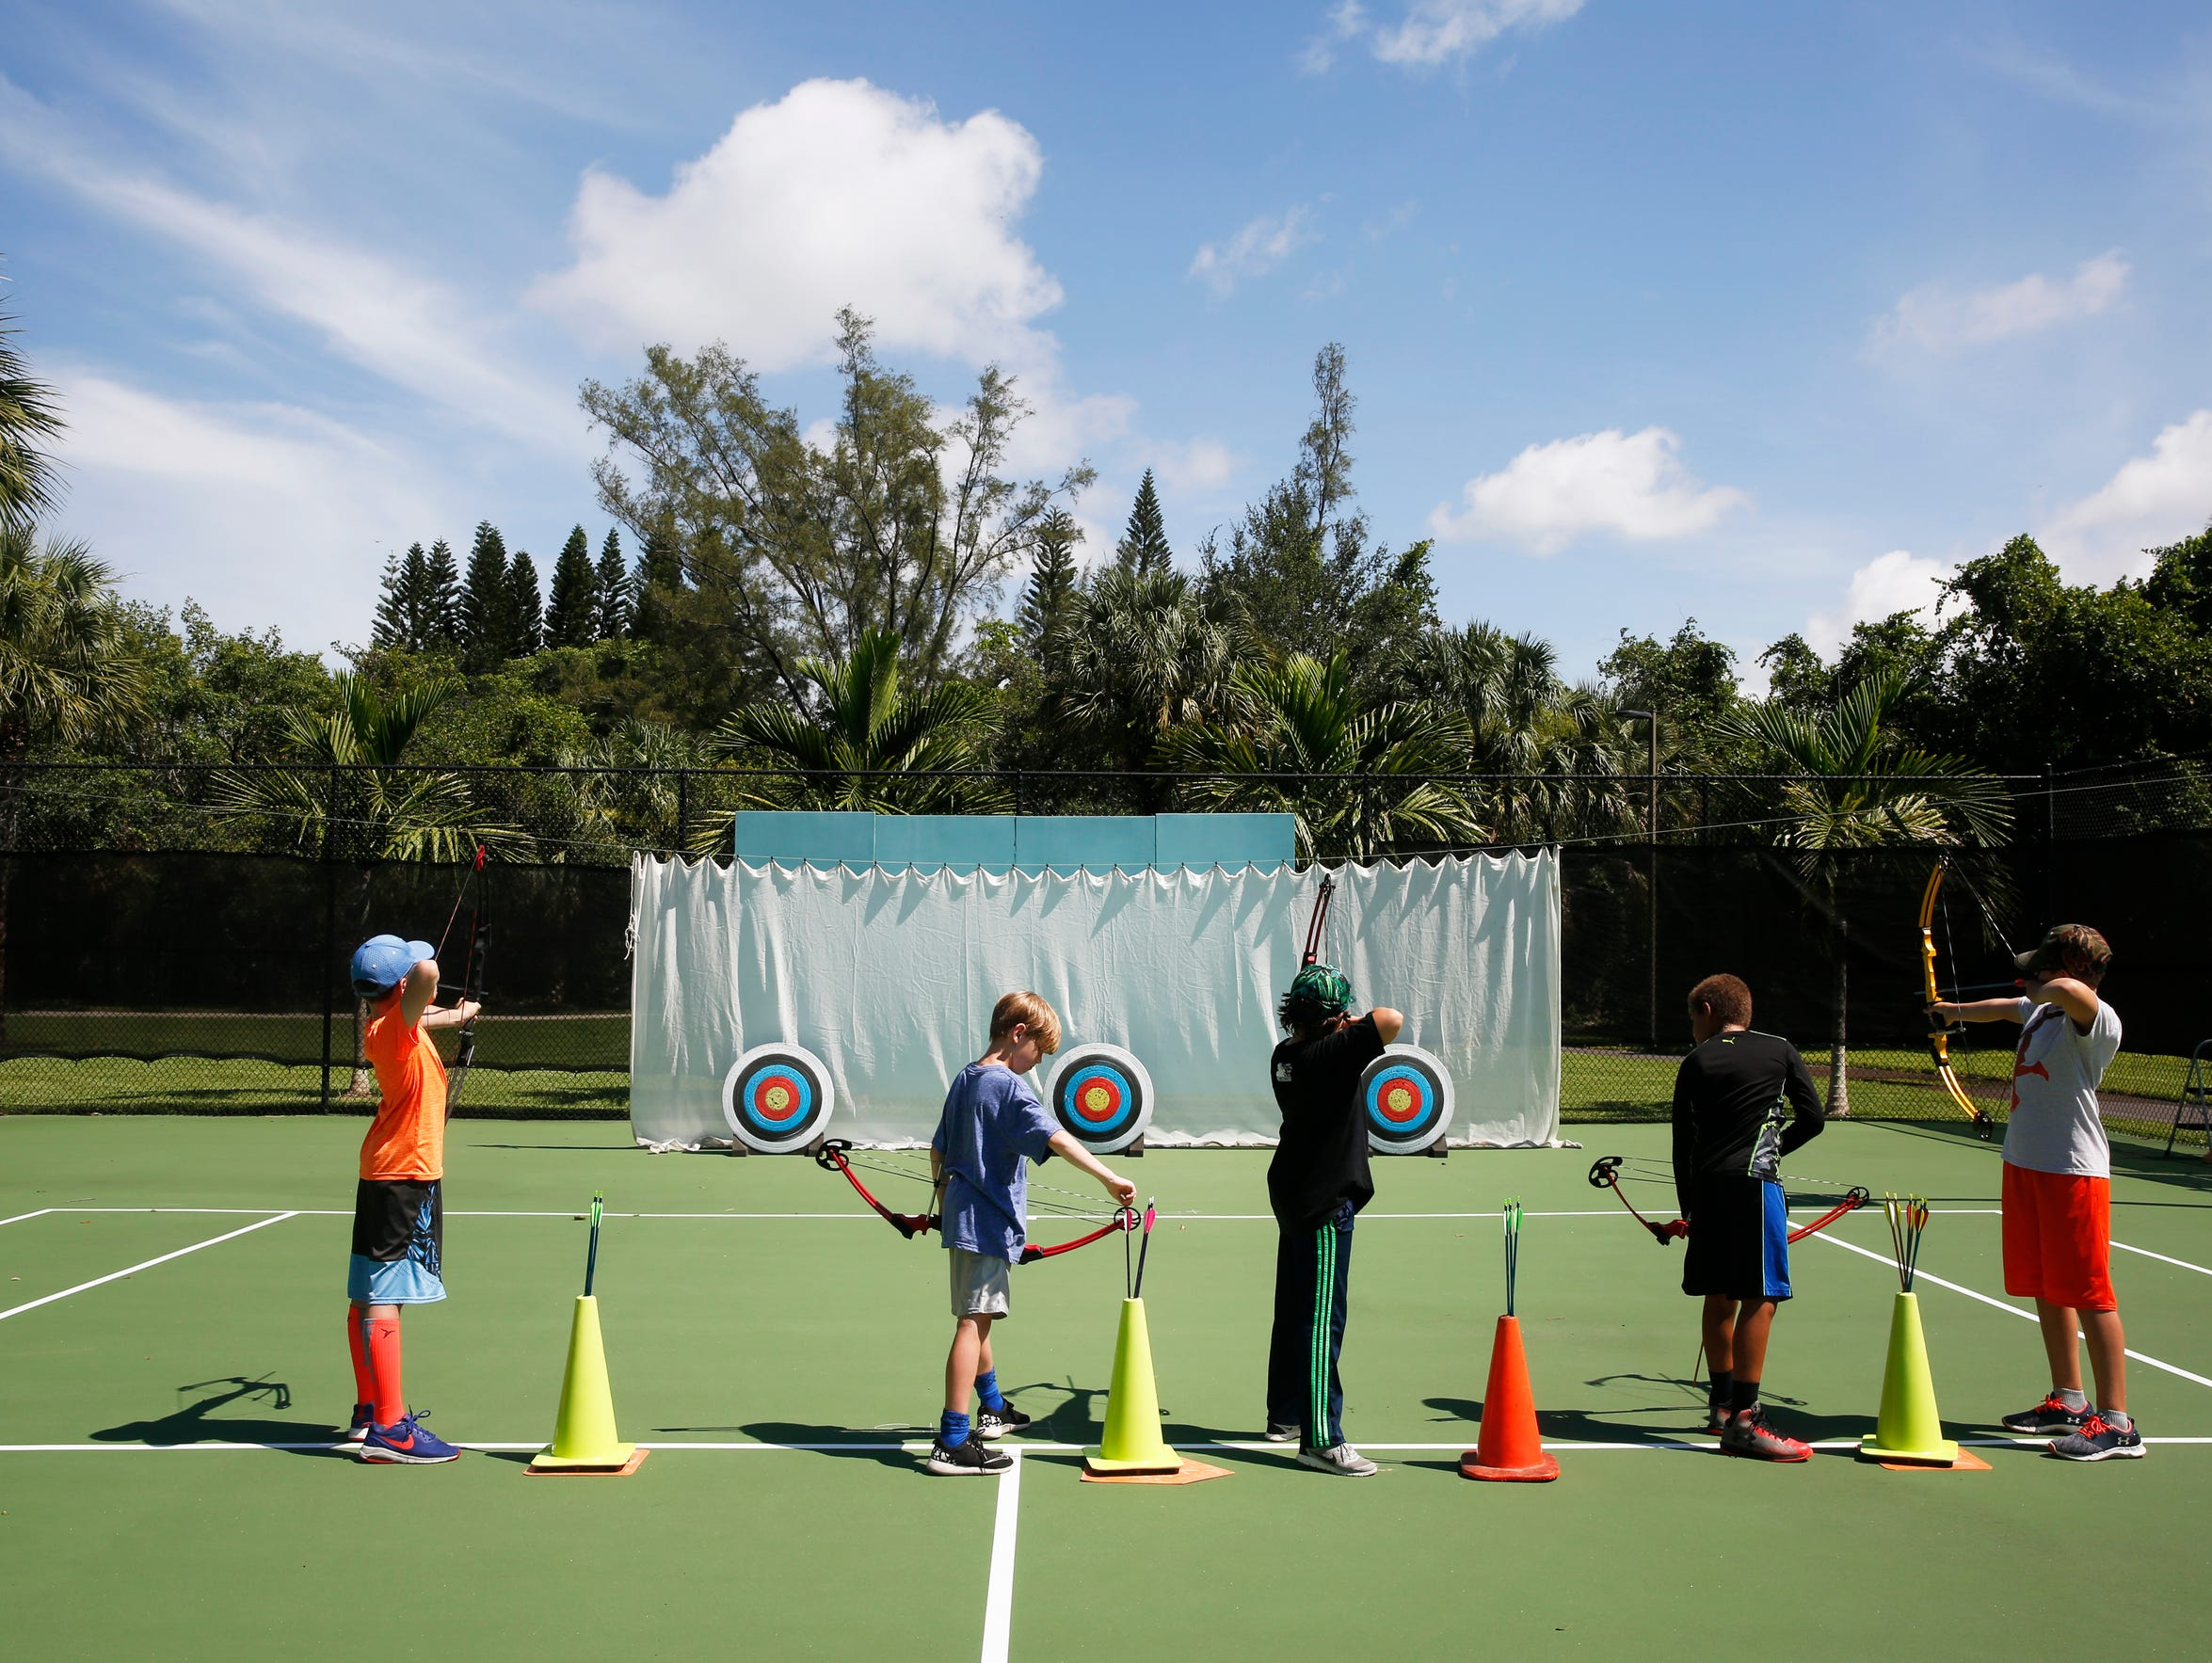 Campers take aim at targets during an archery lesson